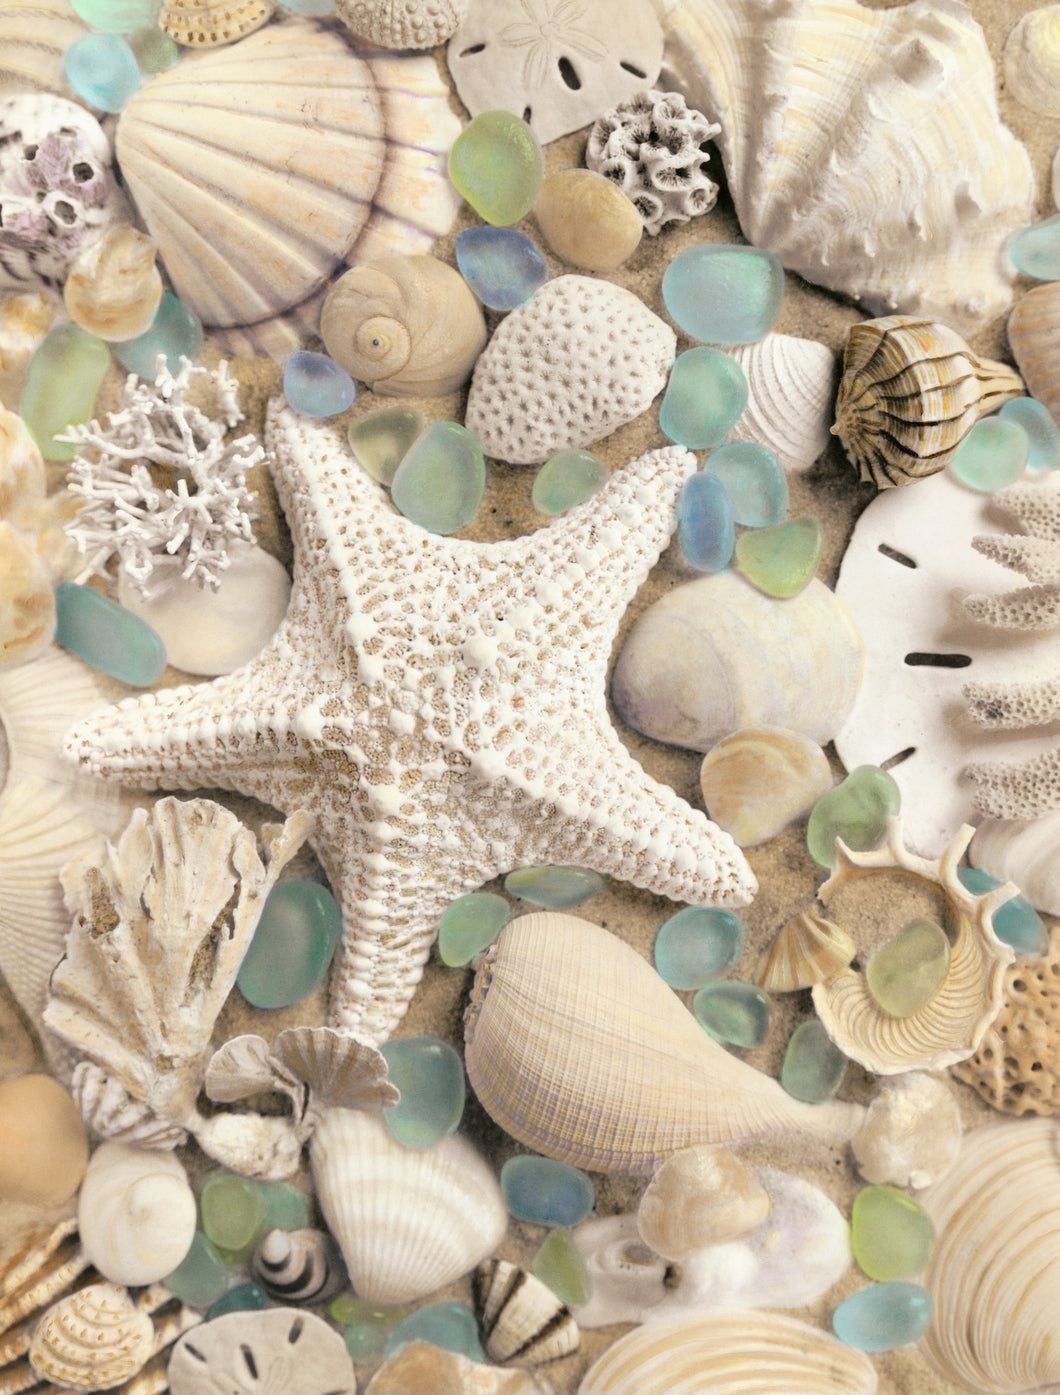 Bahama Starfish and Scallop Artwork